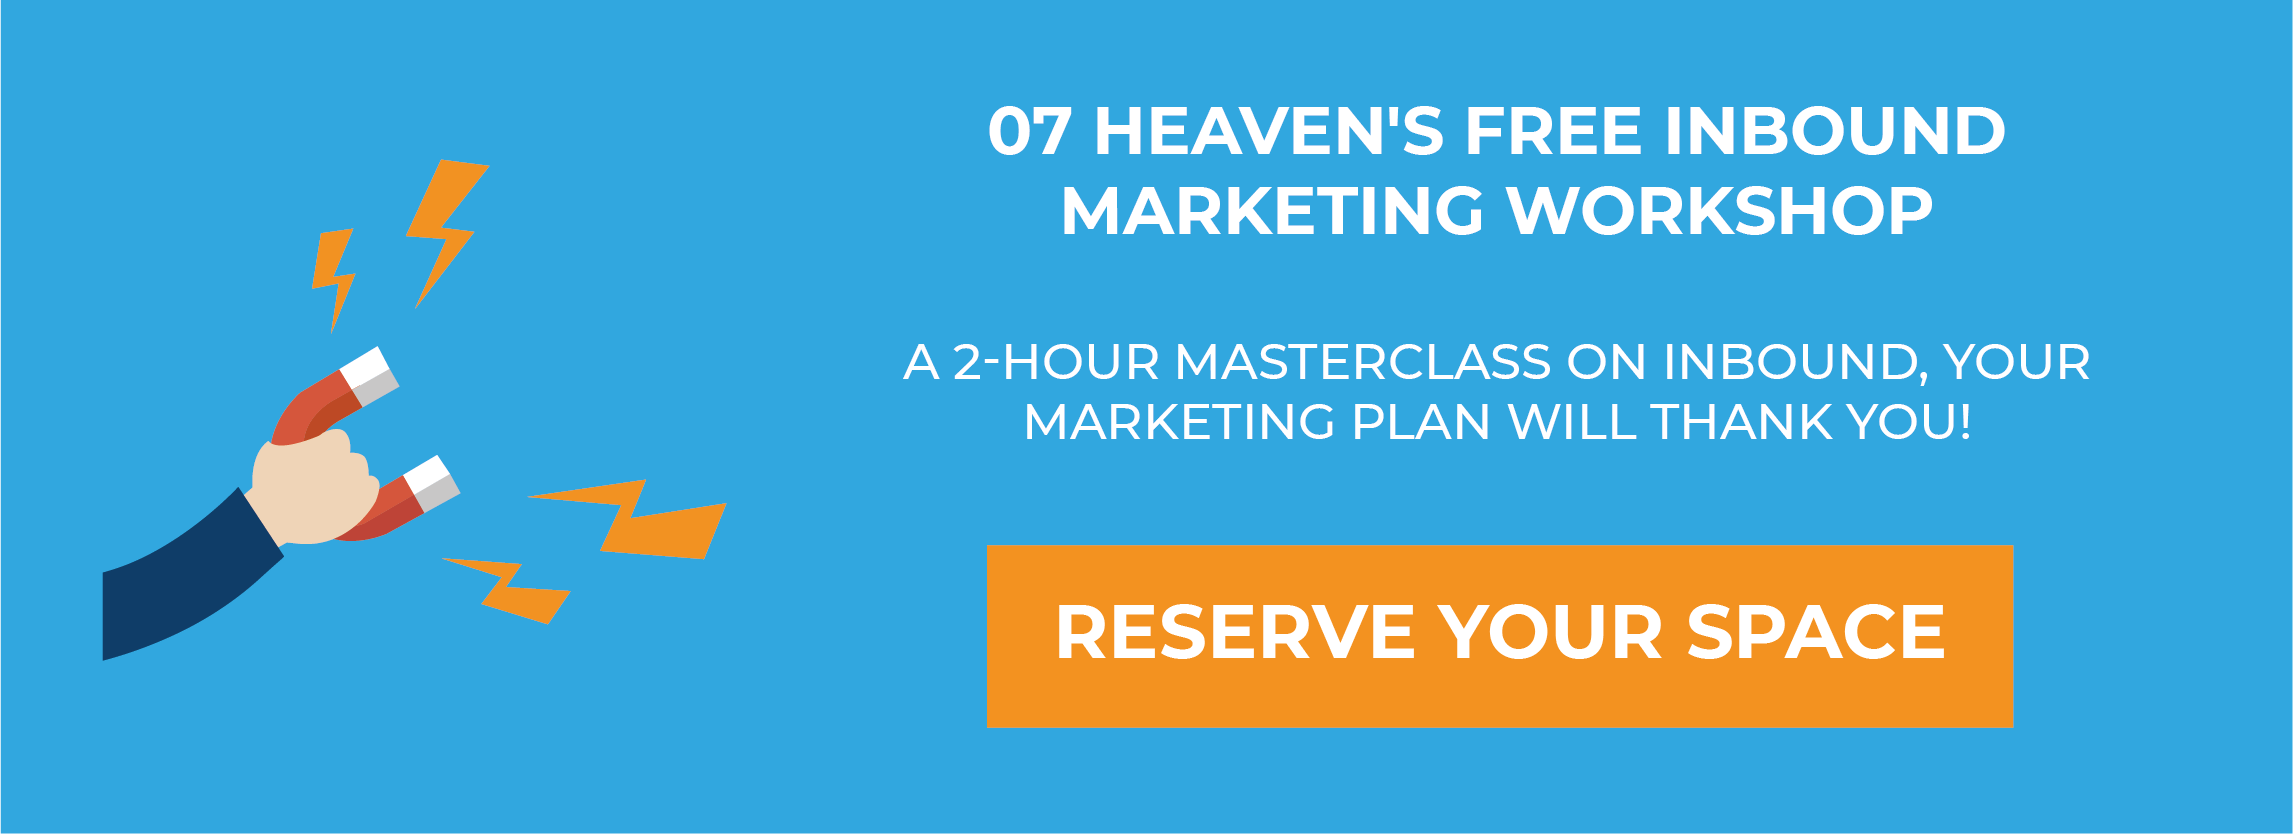 InboundMarketingWorkshop_07Heaven_CTA-01